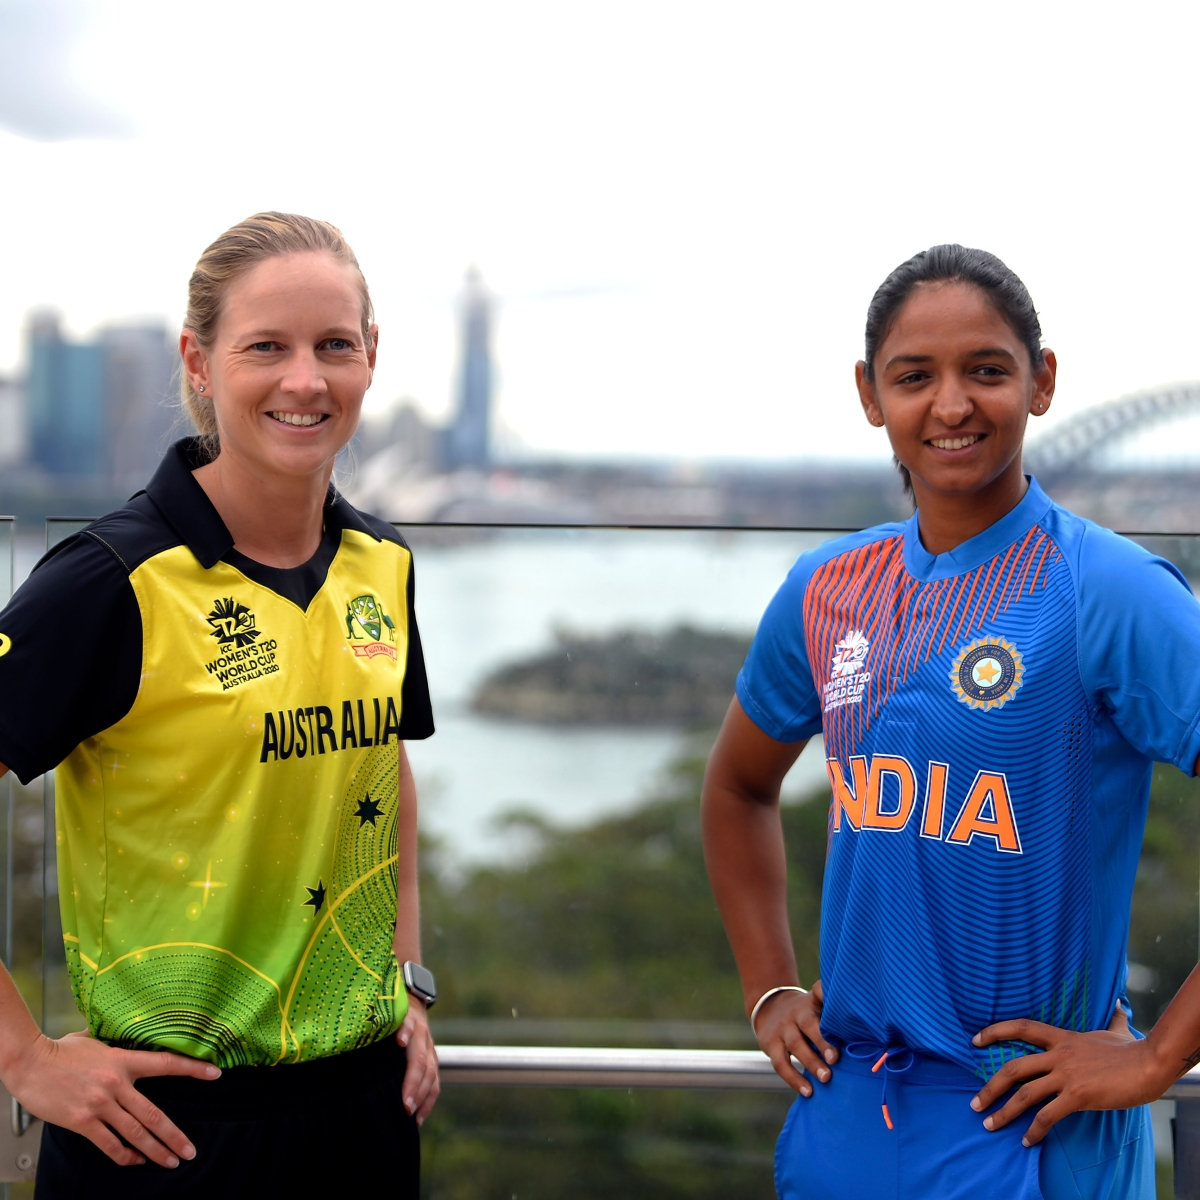 ICC Women's T20 World Cup AUS vs IND: Where, when and how to watch live telecast